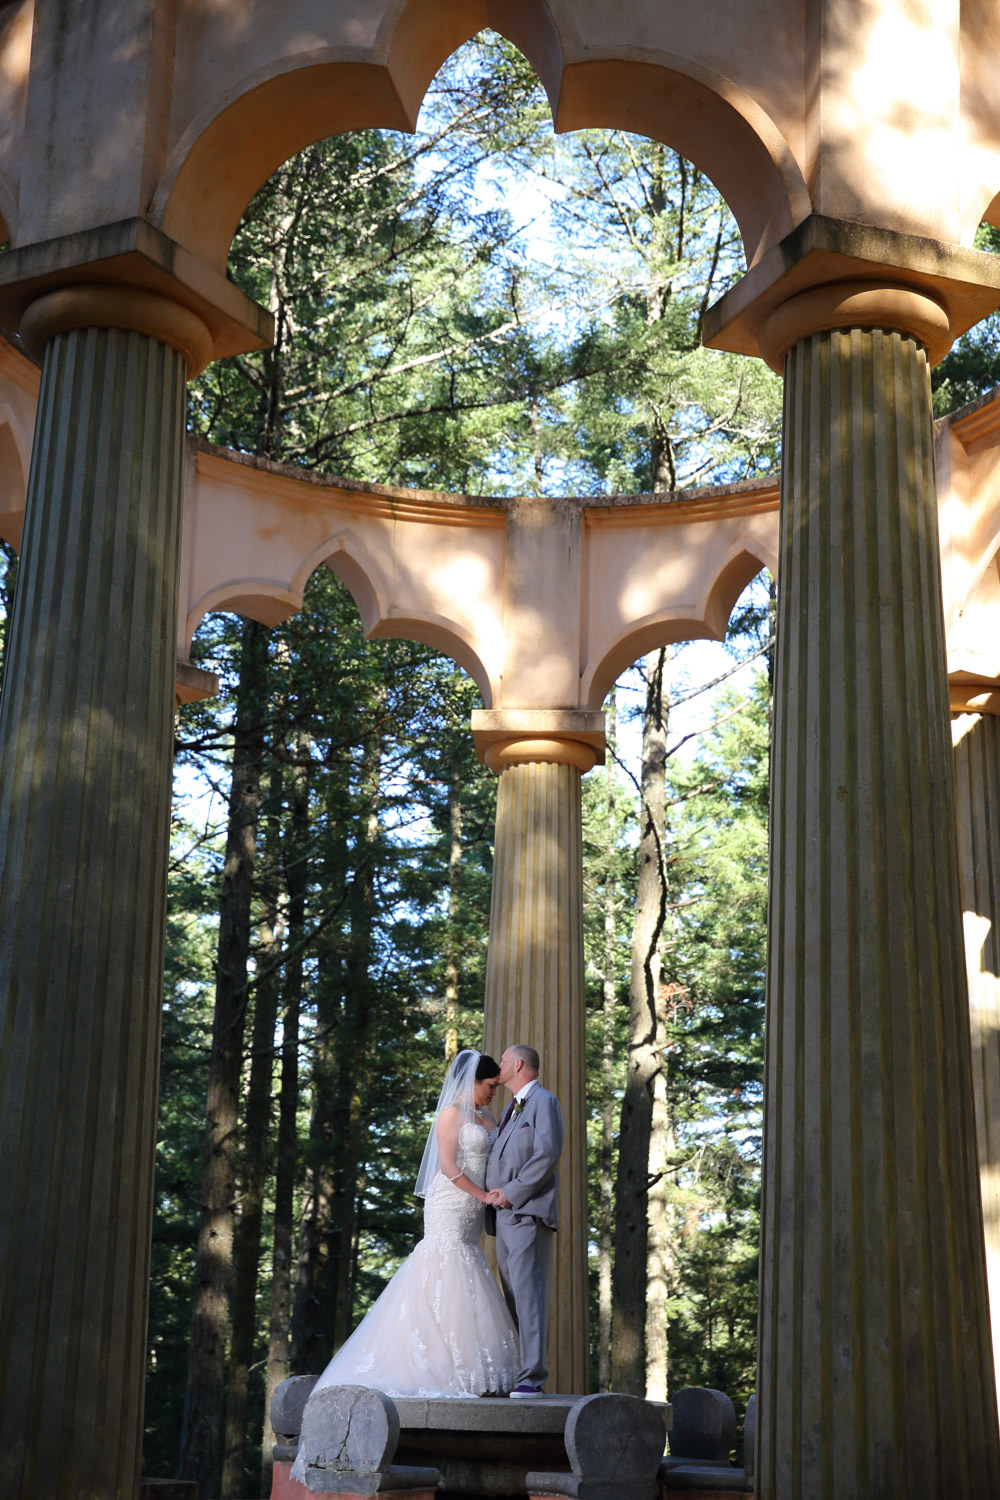 Wedding Roche Harbor San Juan Island Washington 28.jpg